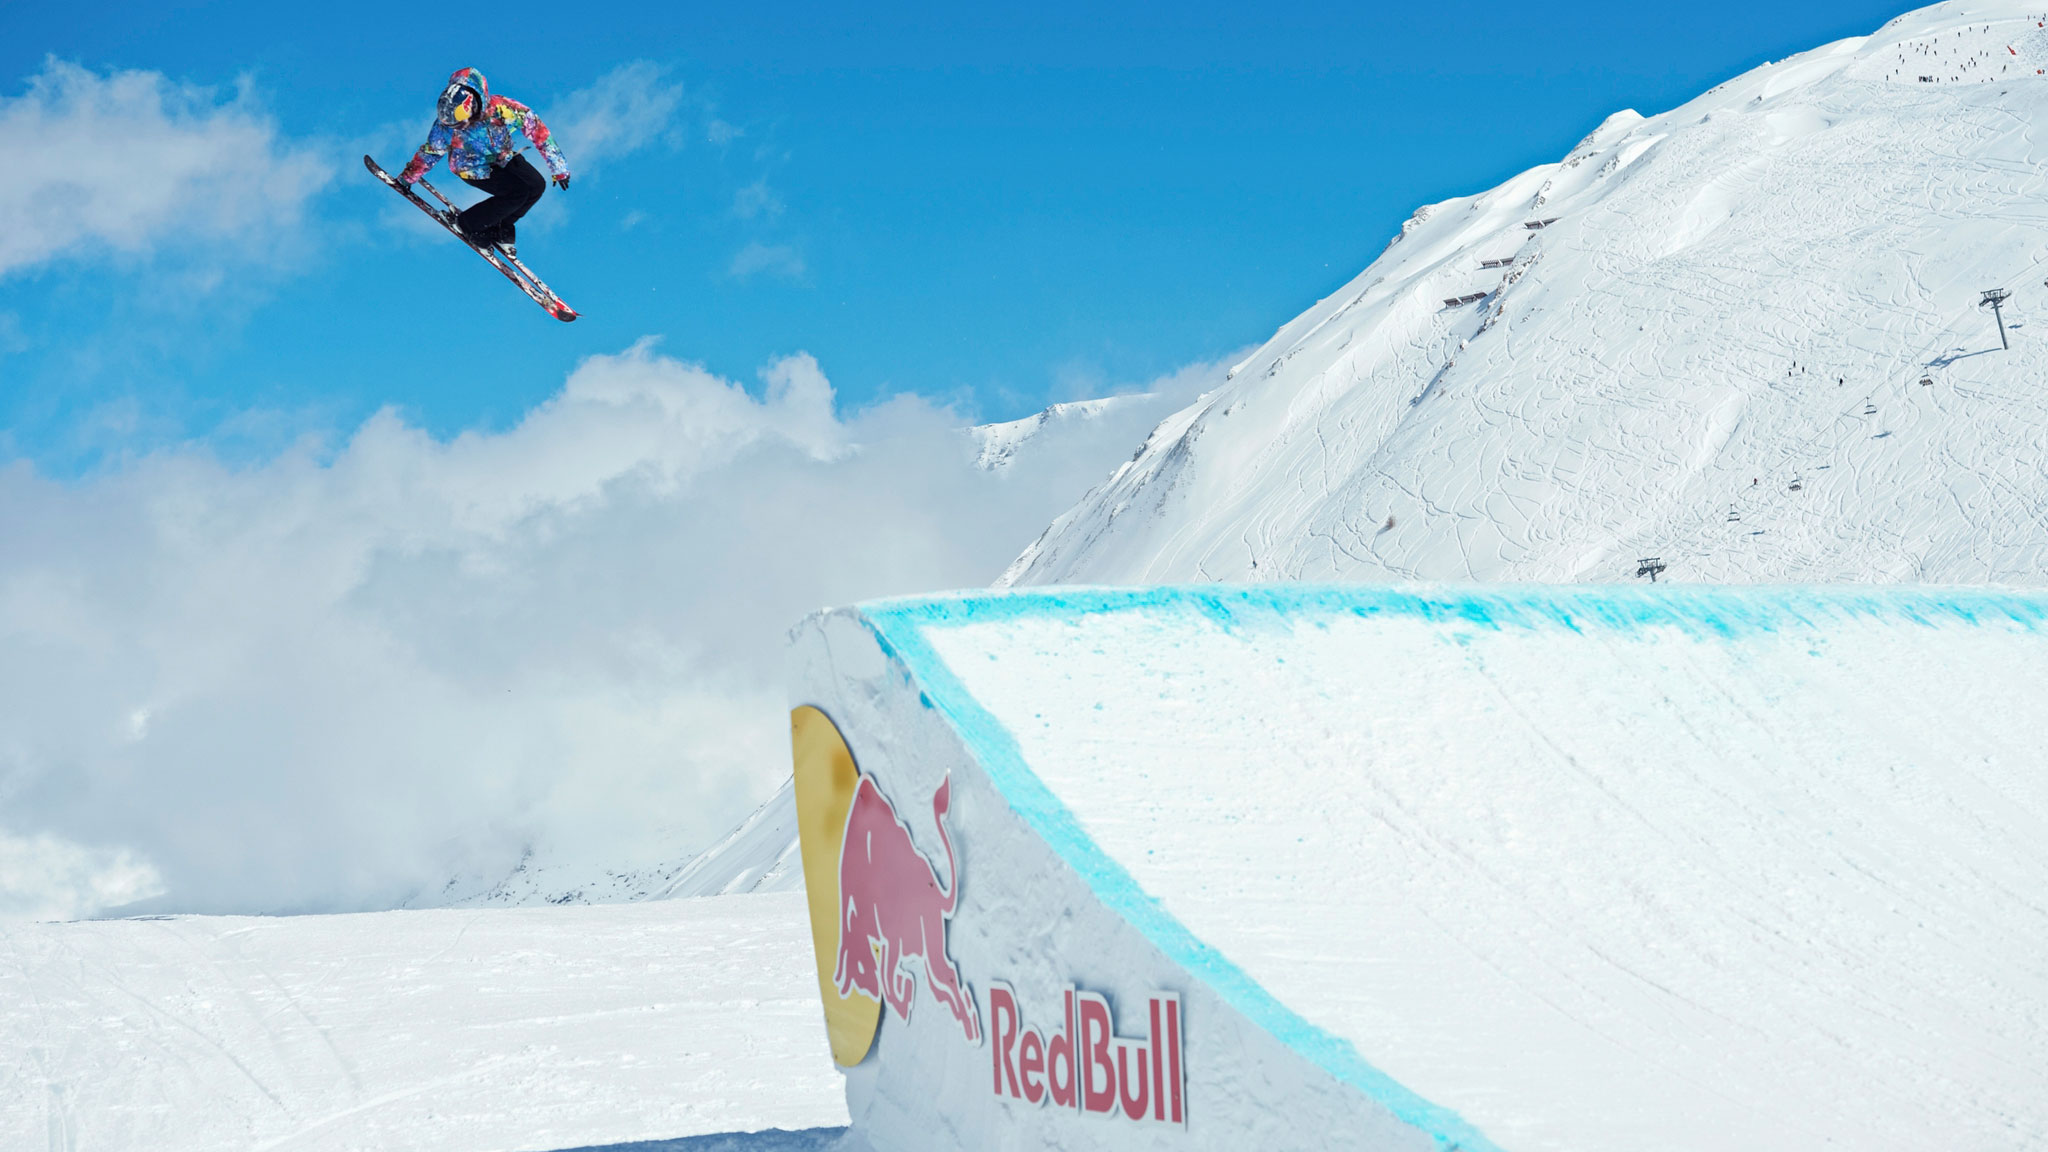 Kaya Turski on her way to her fourth gold medal in Women's Ski Slopestyle at X Games Tignes in March 2013.